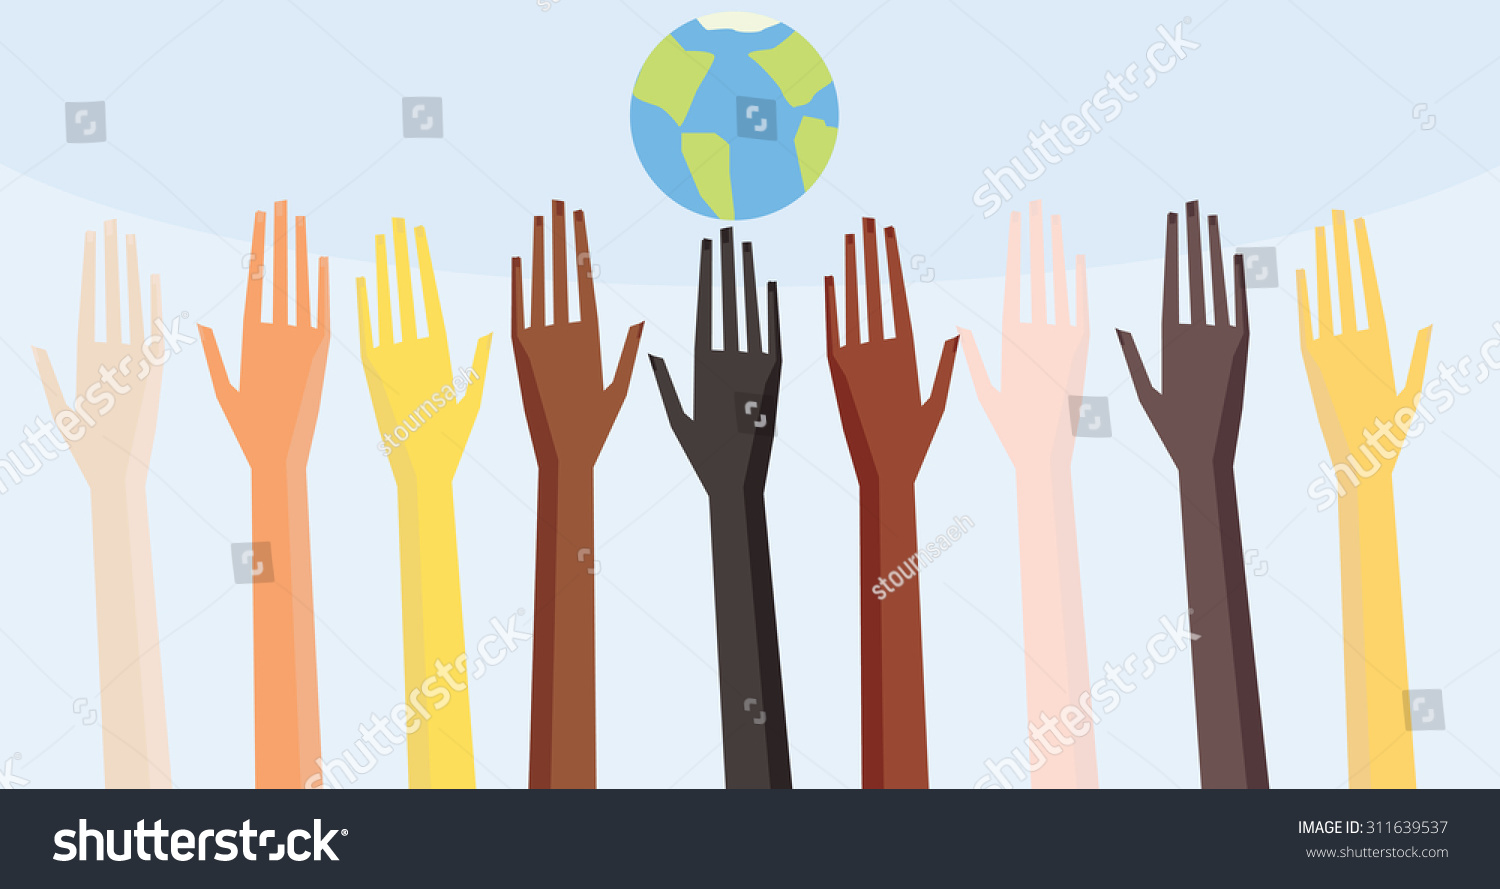 discrimination race and different color skin (enh)1 for the first time, inegi used a color palette to measure  of social  inequality and discrimination on the basis of skin tone m to p ical brie  tones  may simply reflect differences across ethnic and geographic groups.